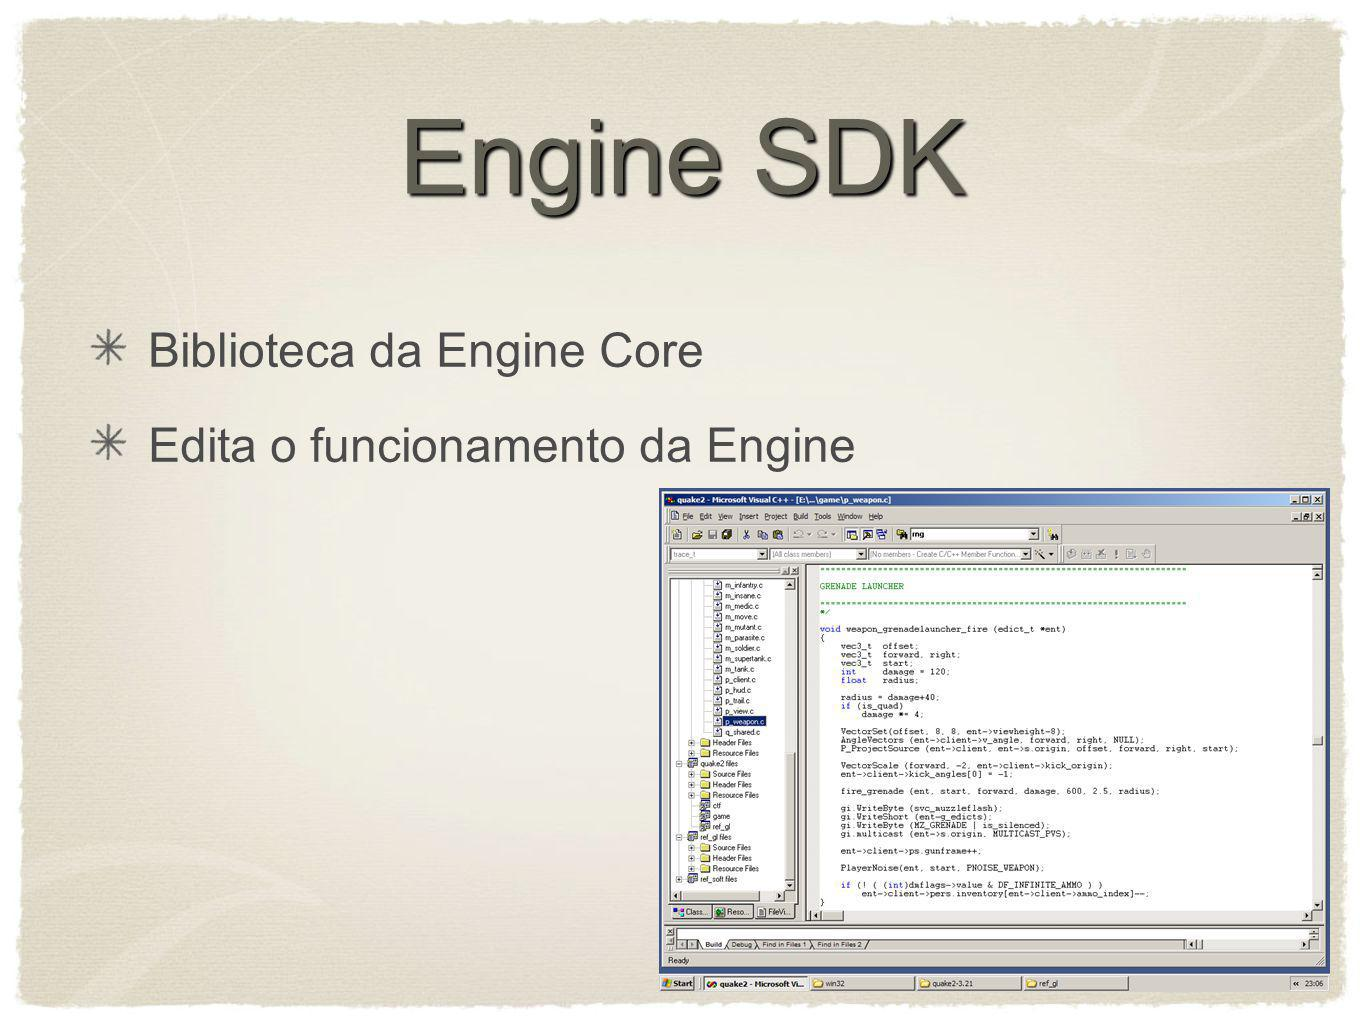 Engine SDK Biblioteca da Engine Core Edita o funcionamento da Engine